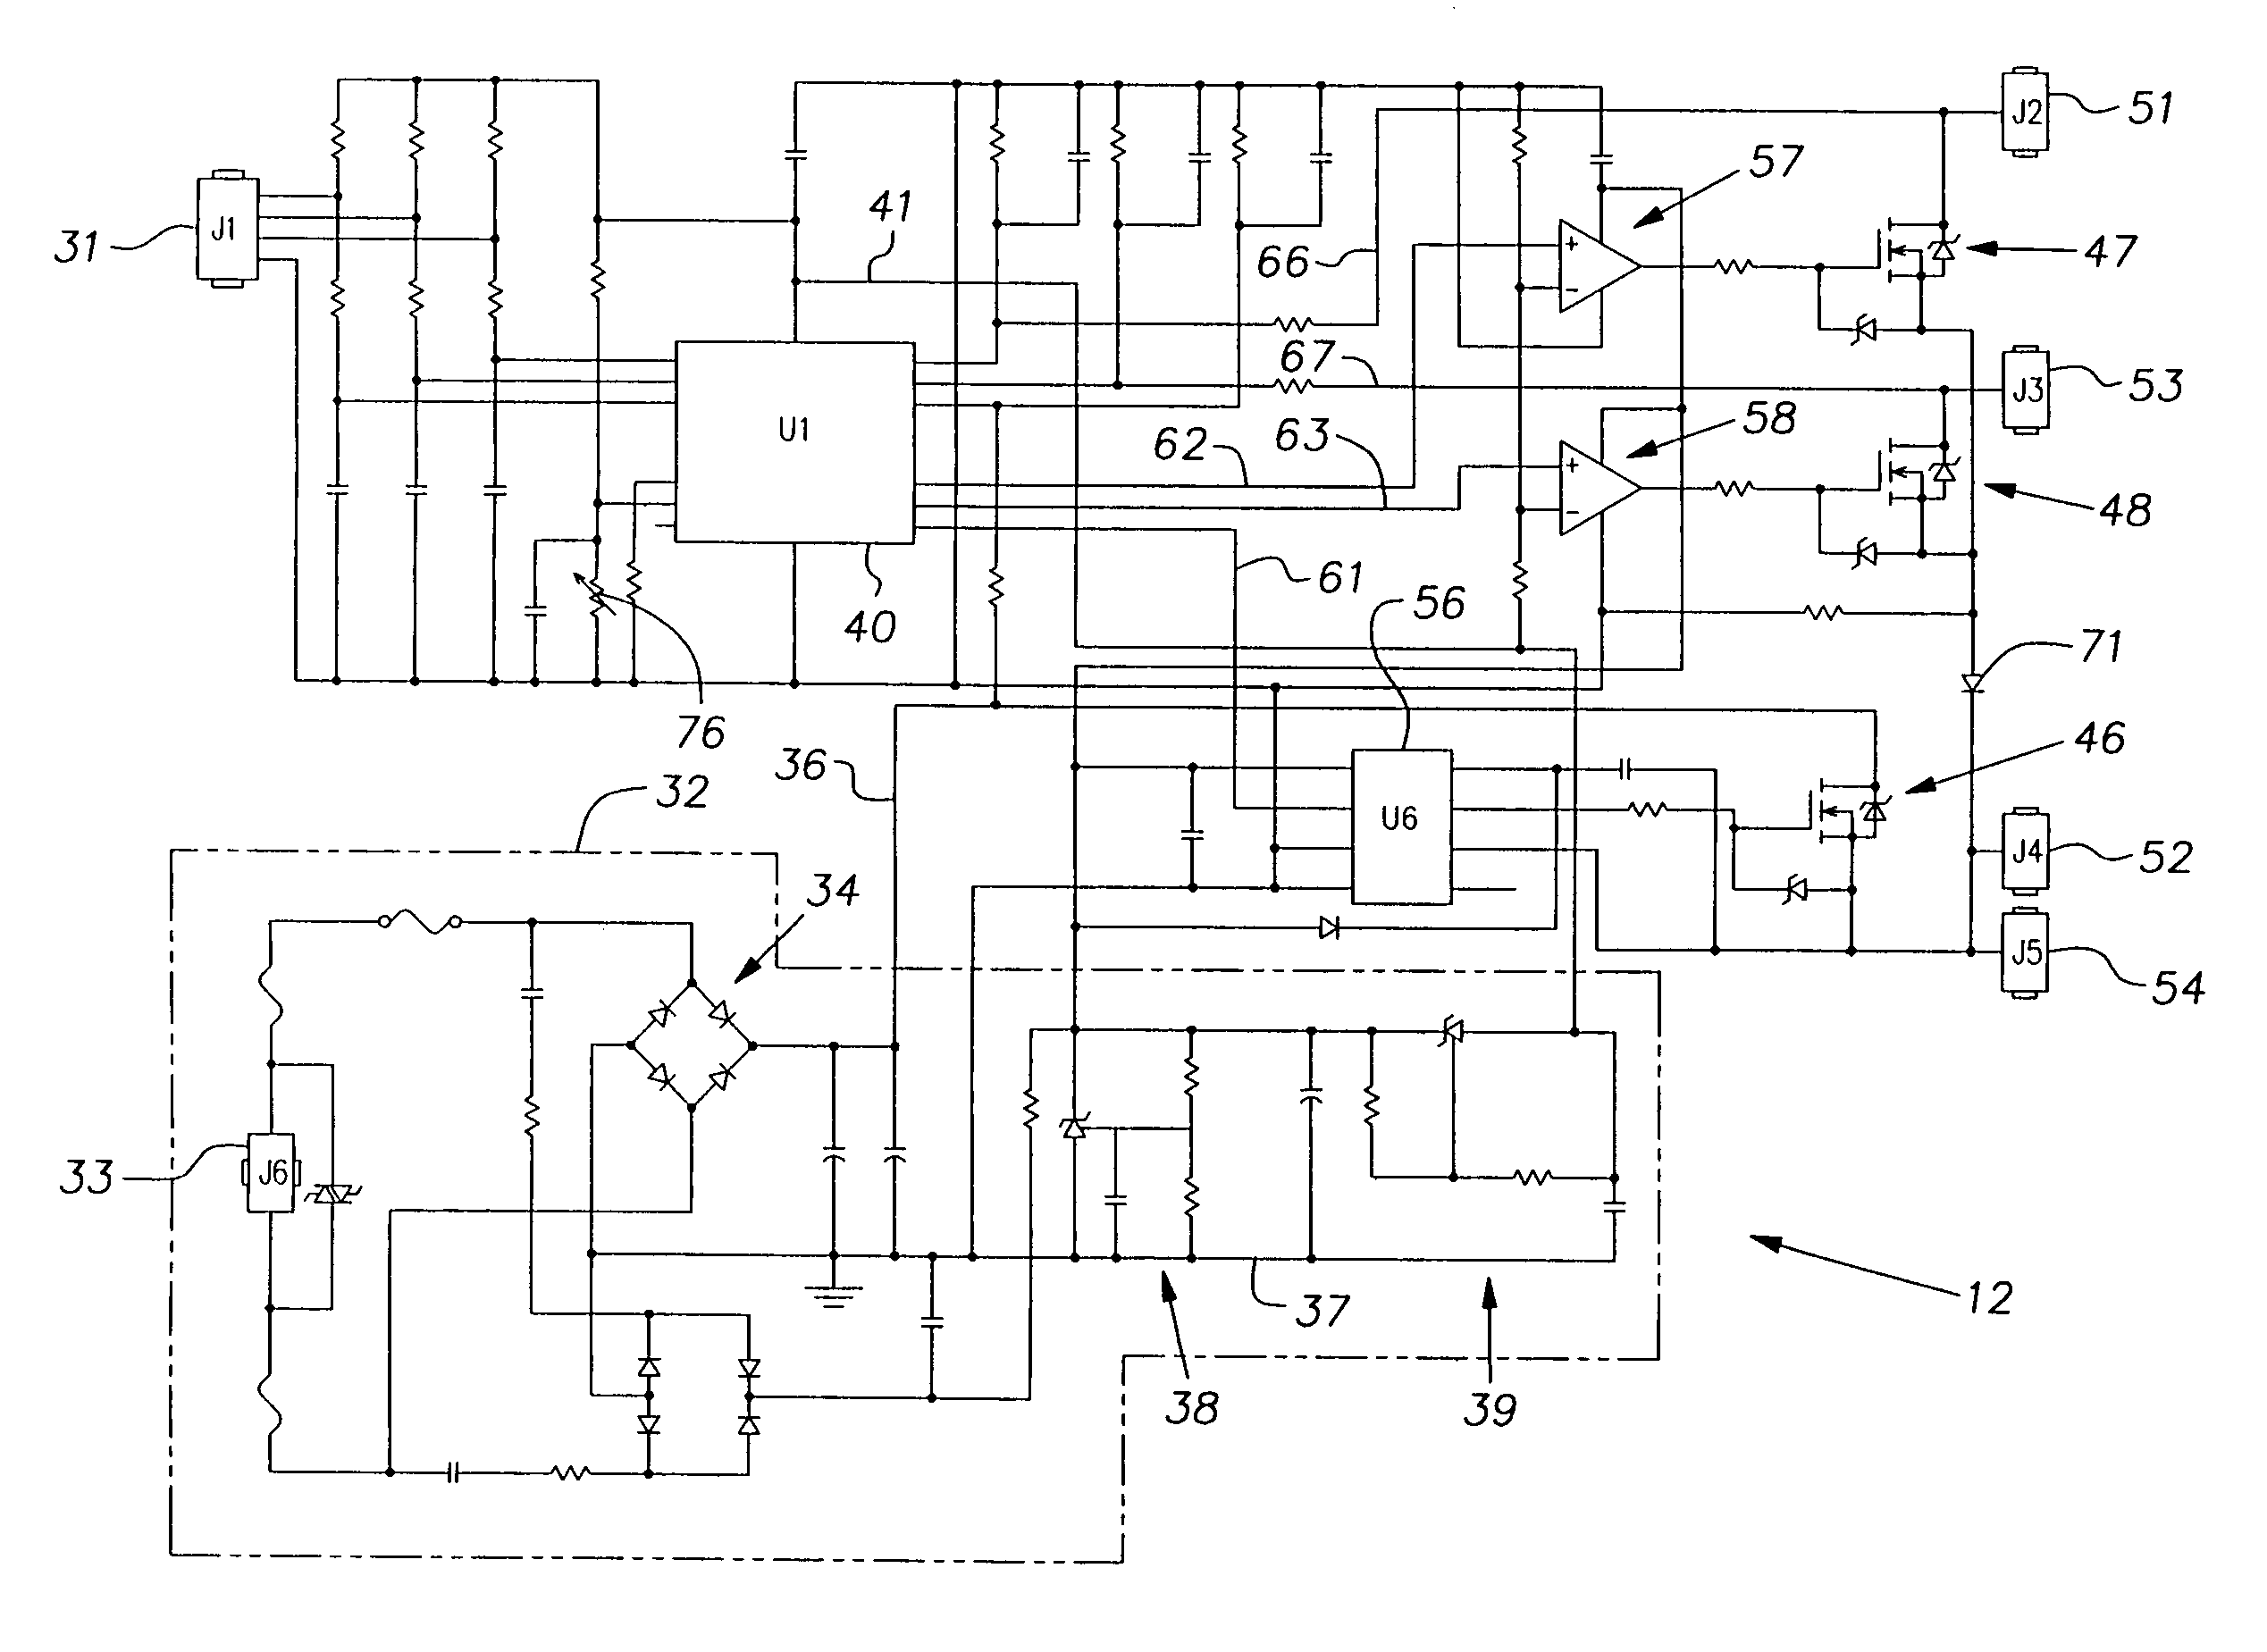 Brevet Us7683560 Brushless Dc Permanent Magnet Motor Google Brevets Control Circuit Diagram Patent Drawing